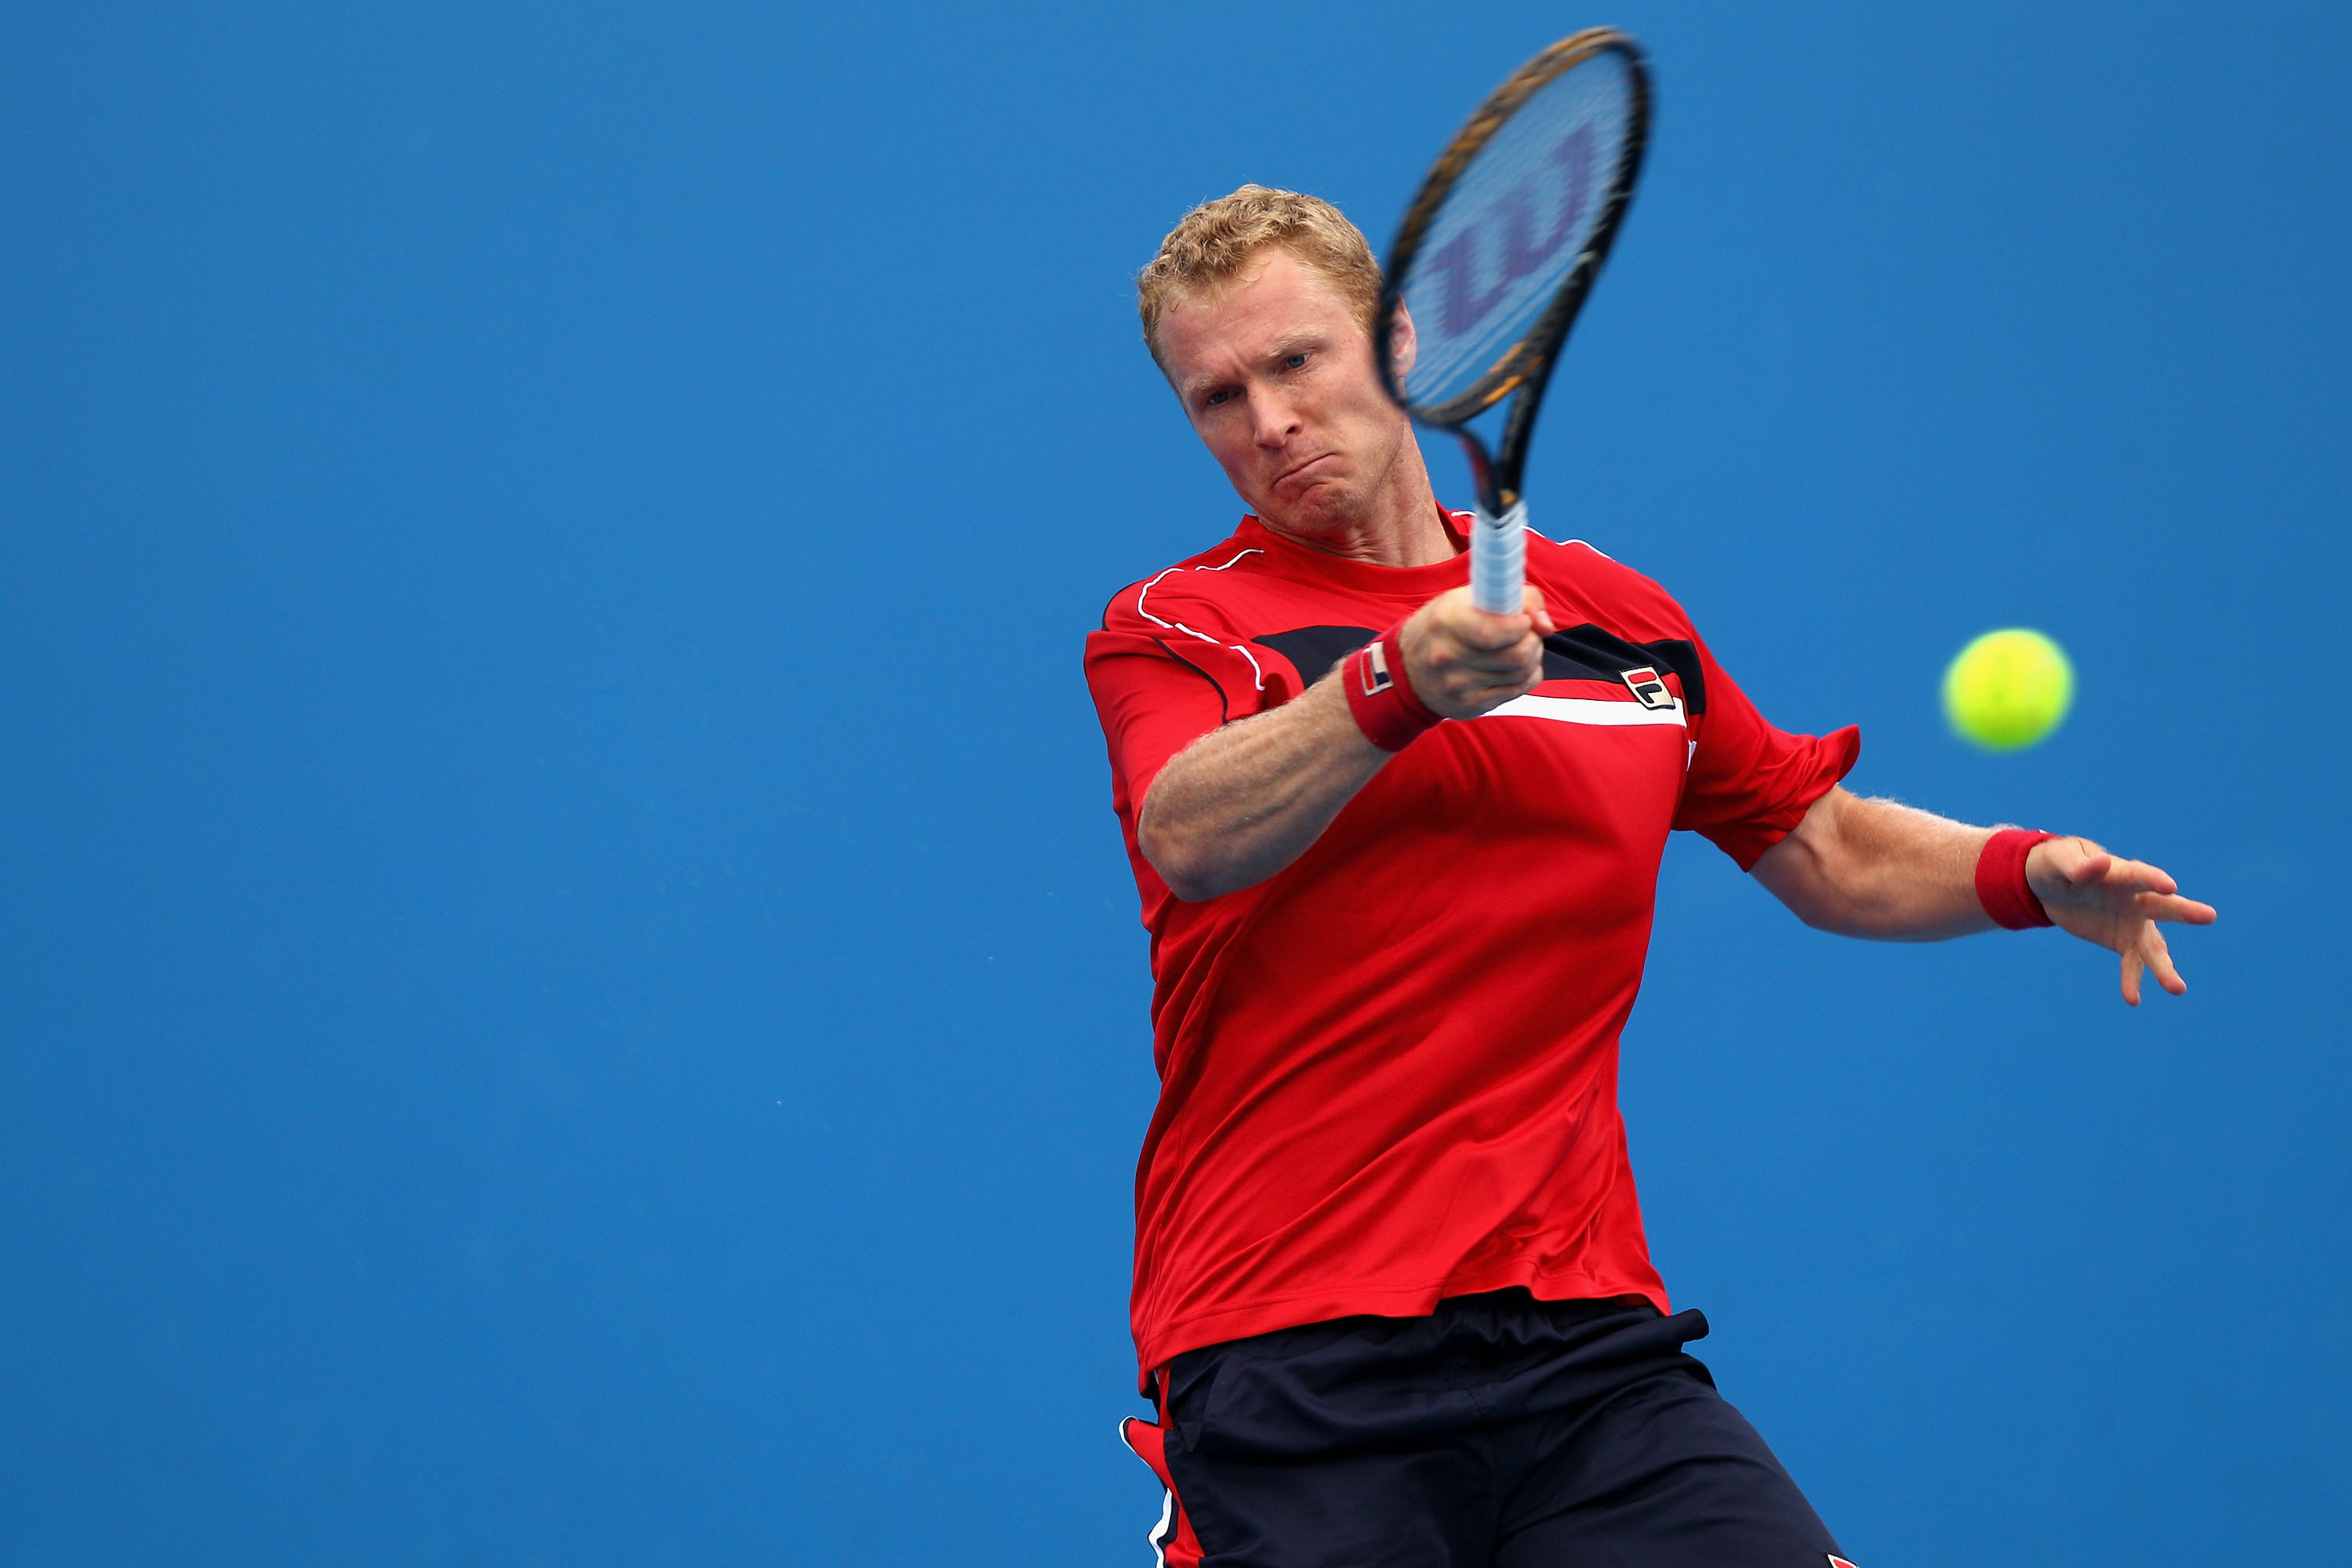 MELBOURNE, AUSTRALIA - JANUARY 17:  Dmitry Tursunov of Russia plays a forehand during his first round match against Viktor Troicki of Serbia during day one of the 2011 Australian Open at Melbourne Park on January 17, 2011 in Melbourne, Australia.  (Photo